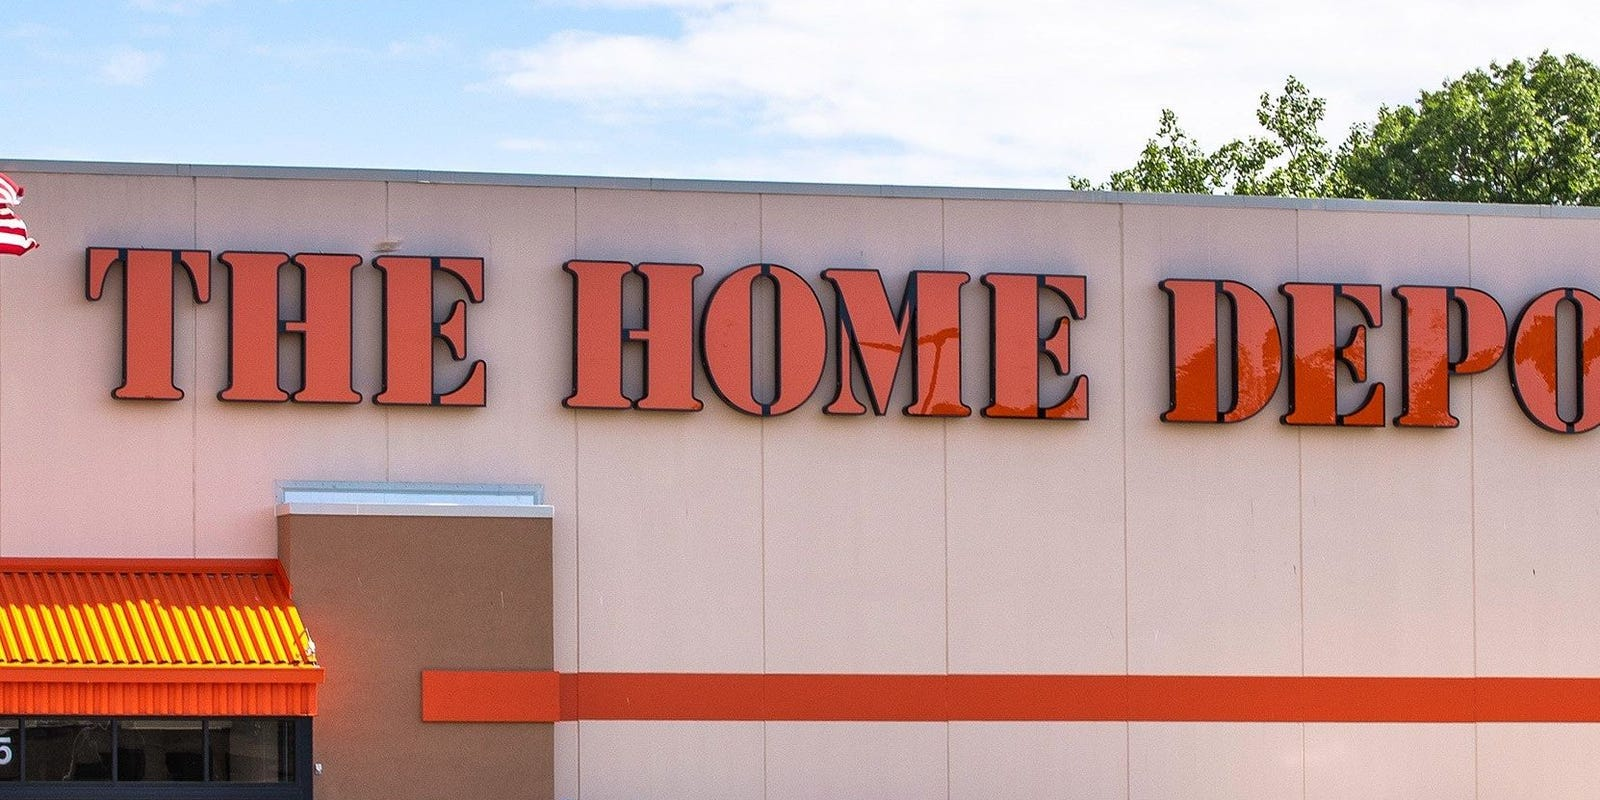 Home Depot says its Black Friday sale will last nearly 2 months amid coronavirus pandemic